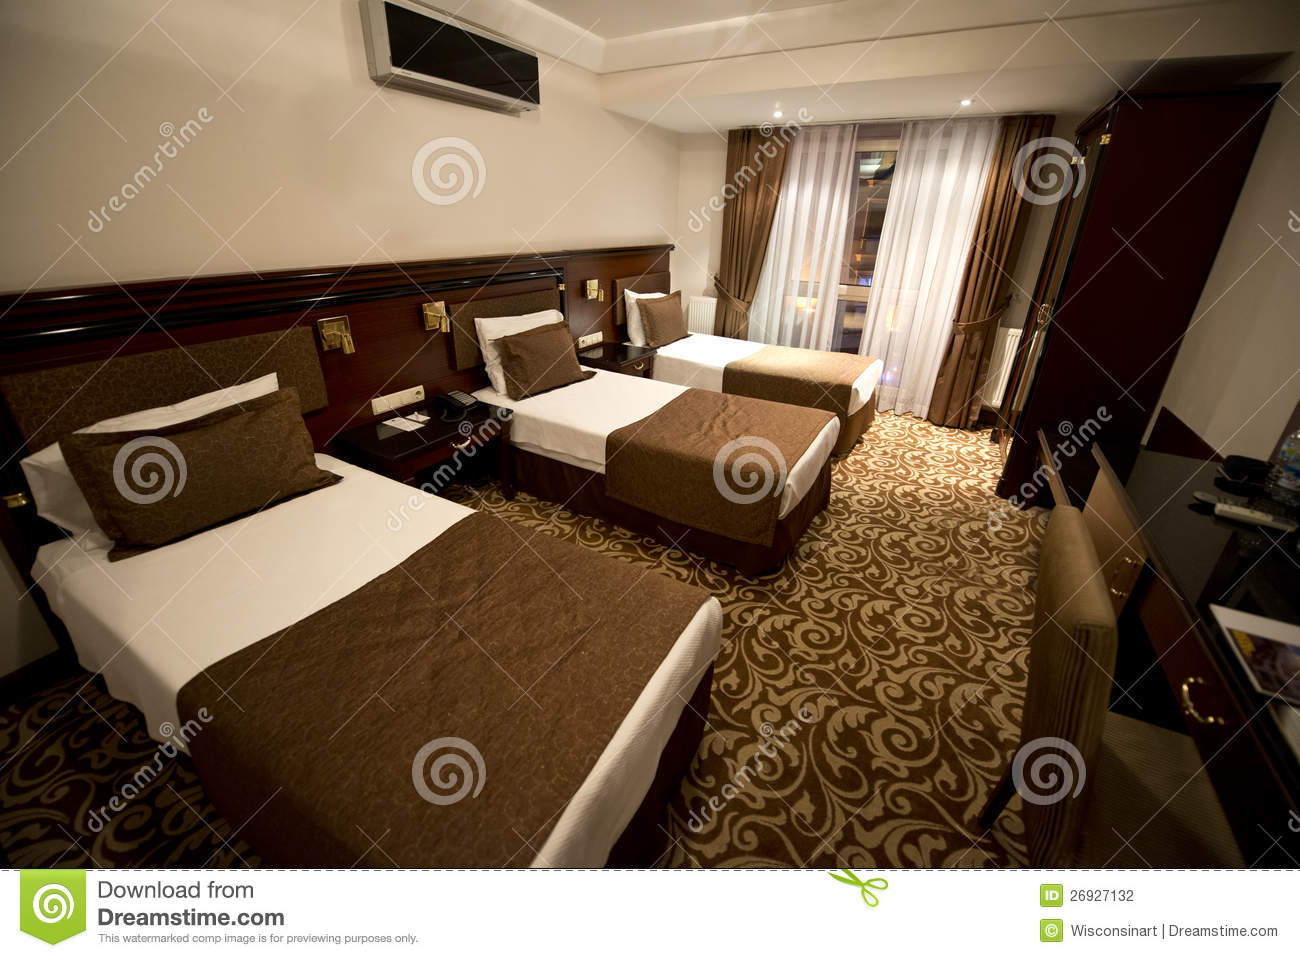 Small hotel room with three single beds stock photo for Small hotel room